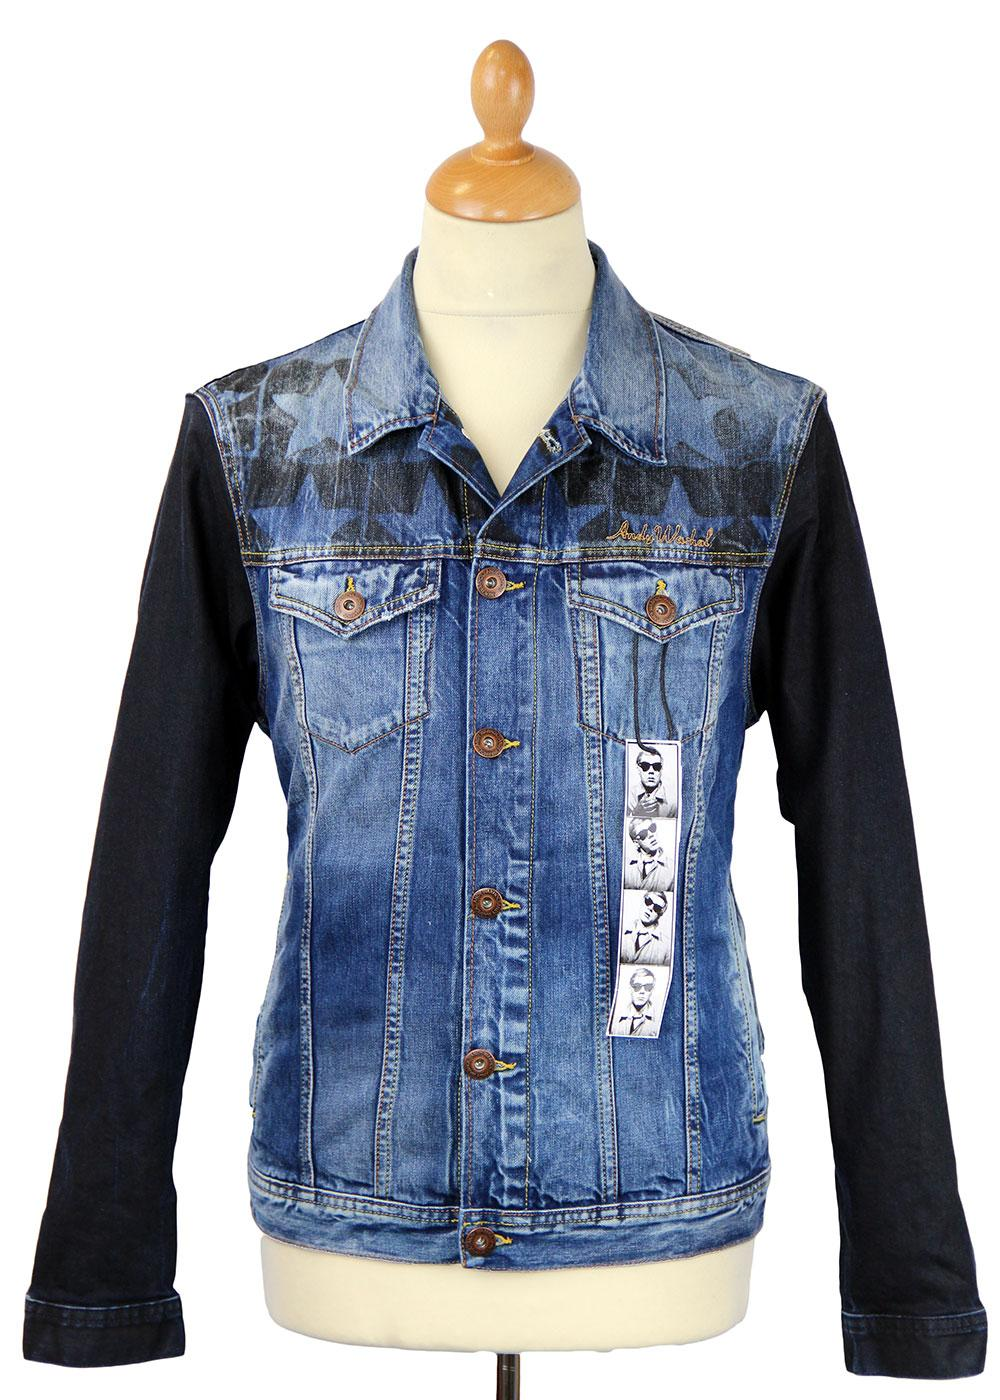 Castelli ANDY WARHOL PEPE JEANS Retro Denim Jacket